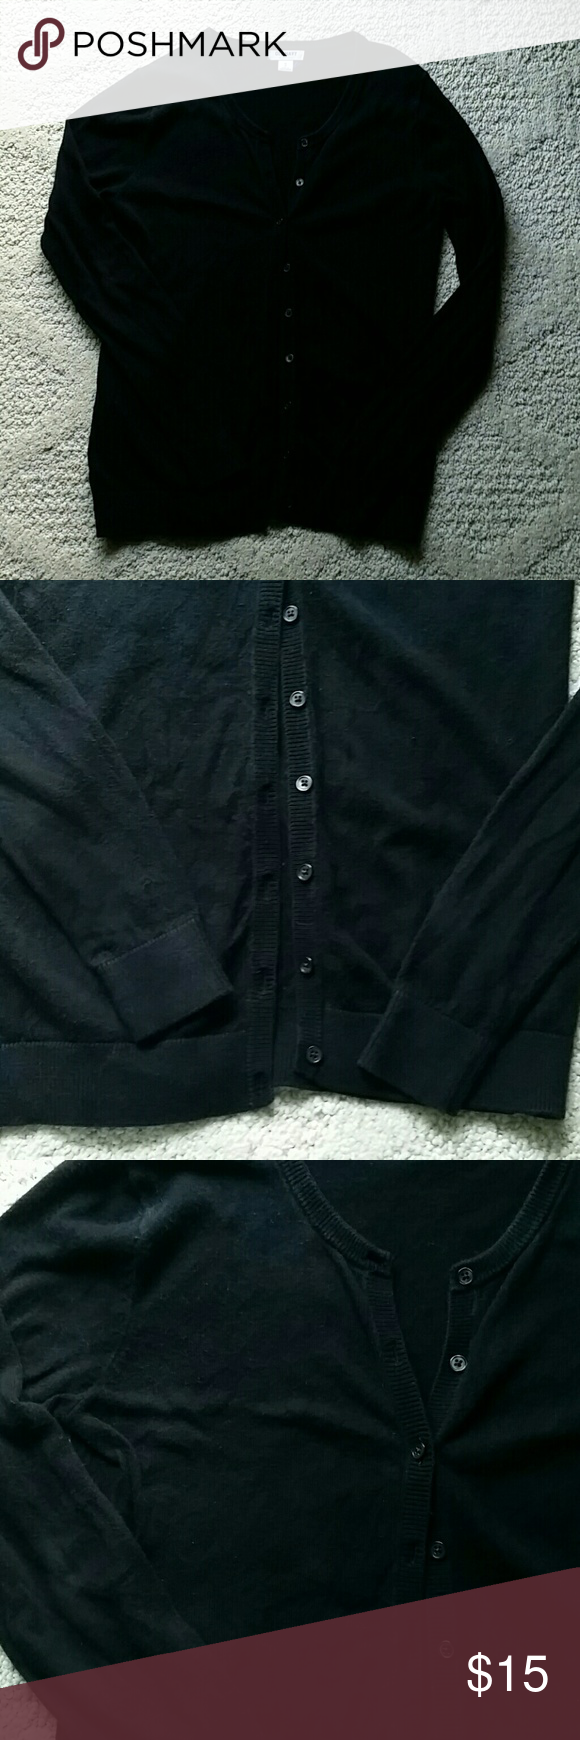 Old Navy black button down cardigan size XS | Black button, Navy ...